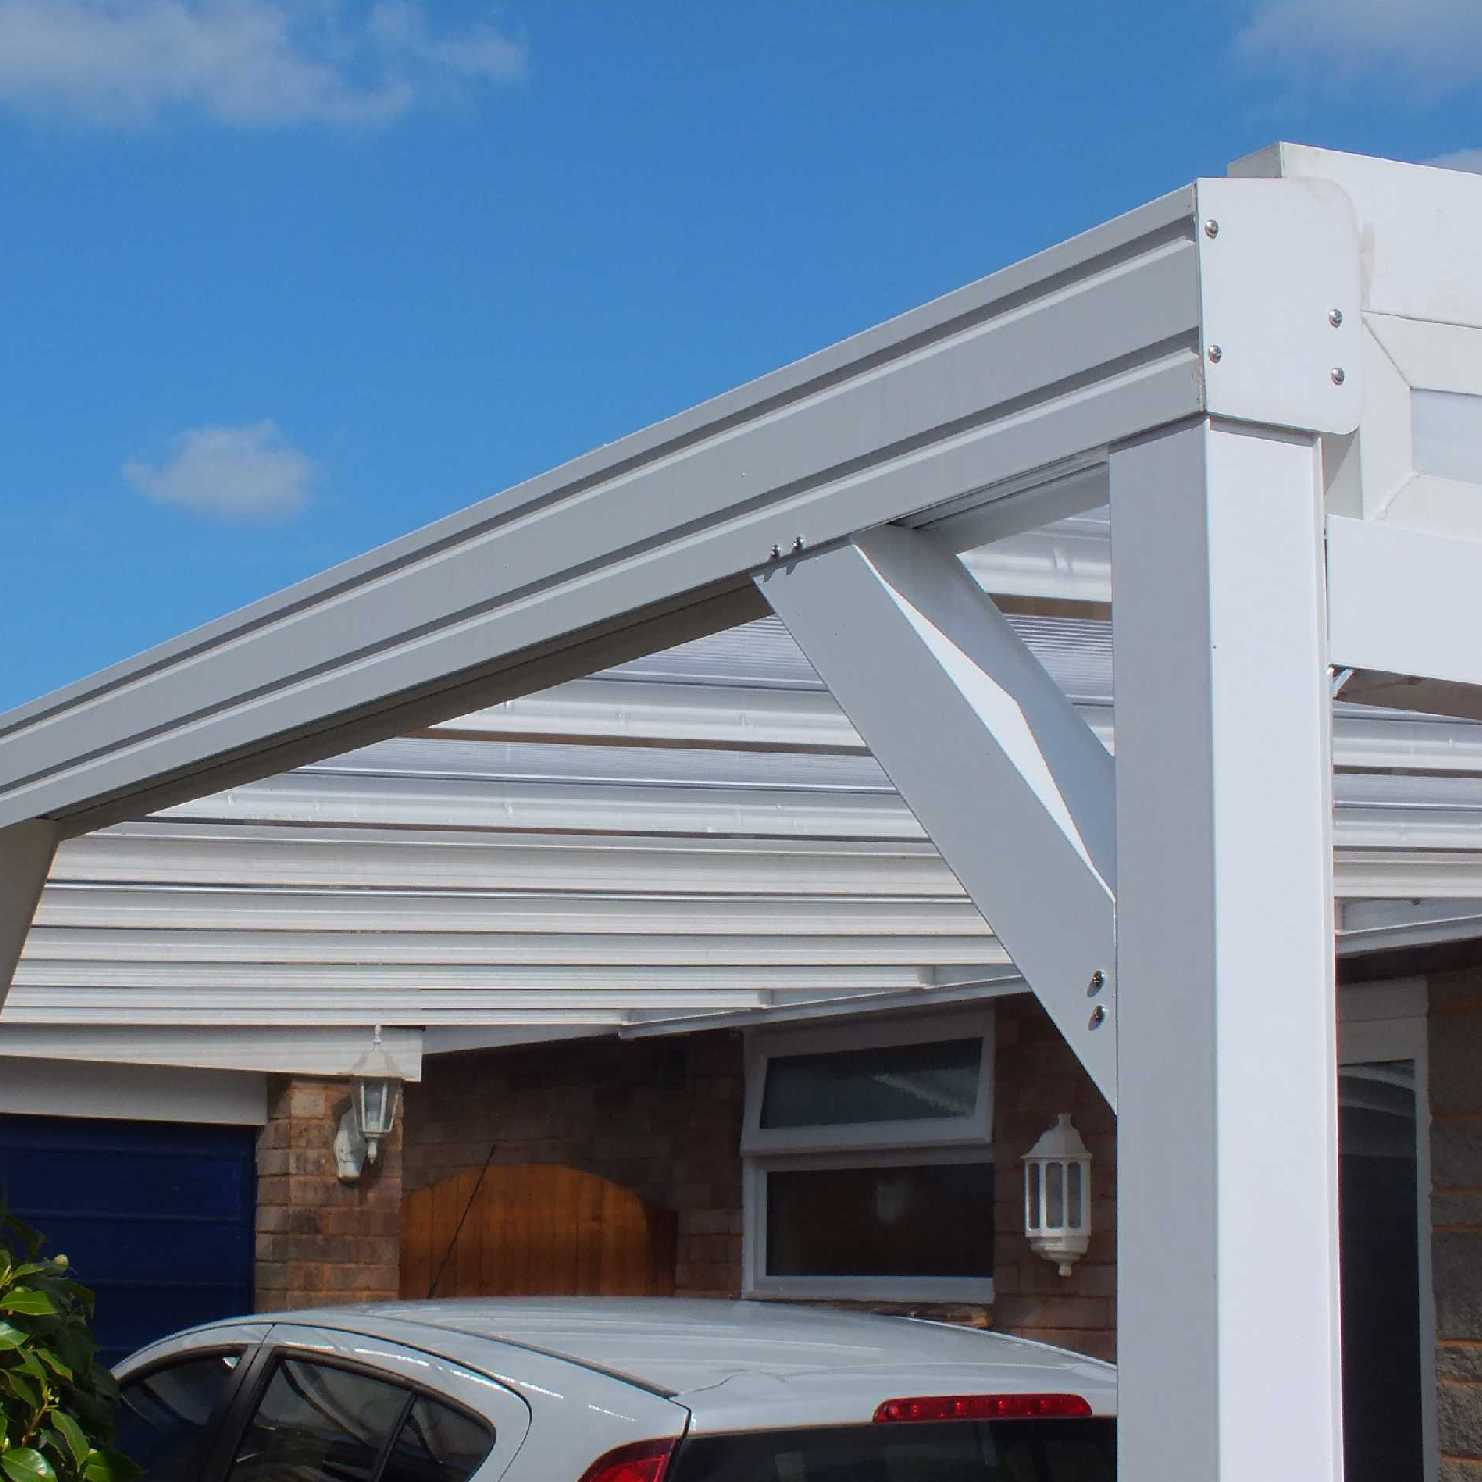 Great deals on Omega Smart White Lean-To Canopy with 16mm Polycarbonate Glazing - 3.1m (W) x 2.0m (P), (2) Supporting Posts